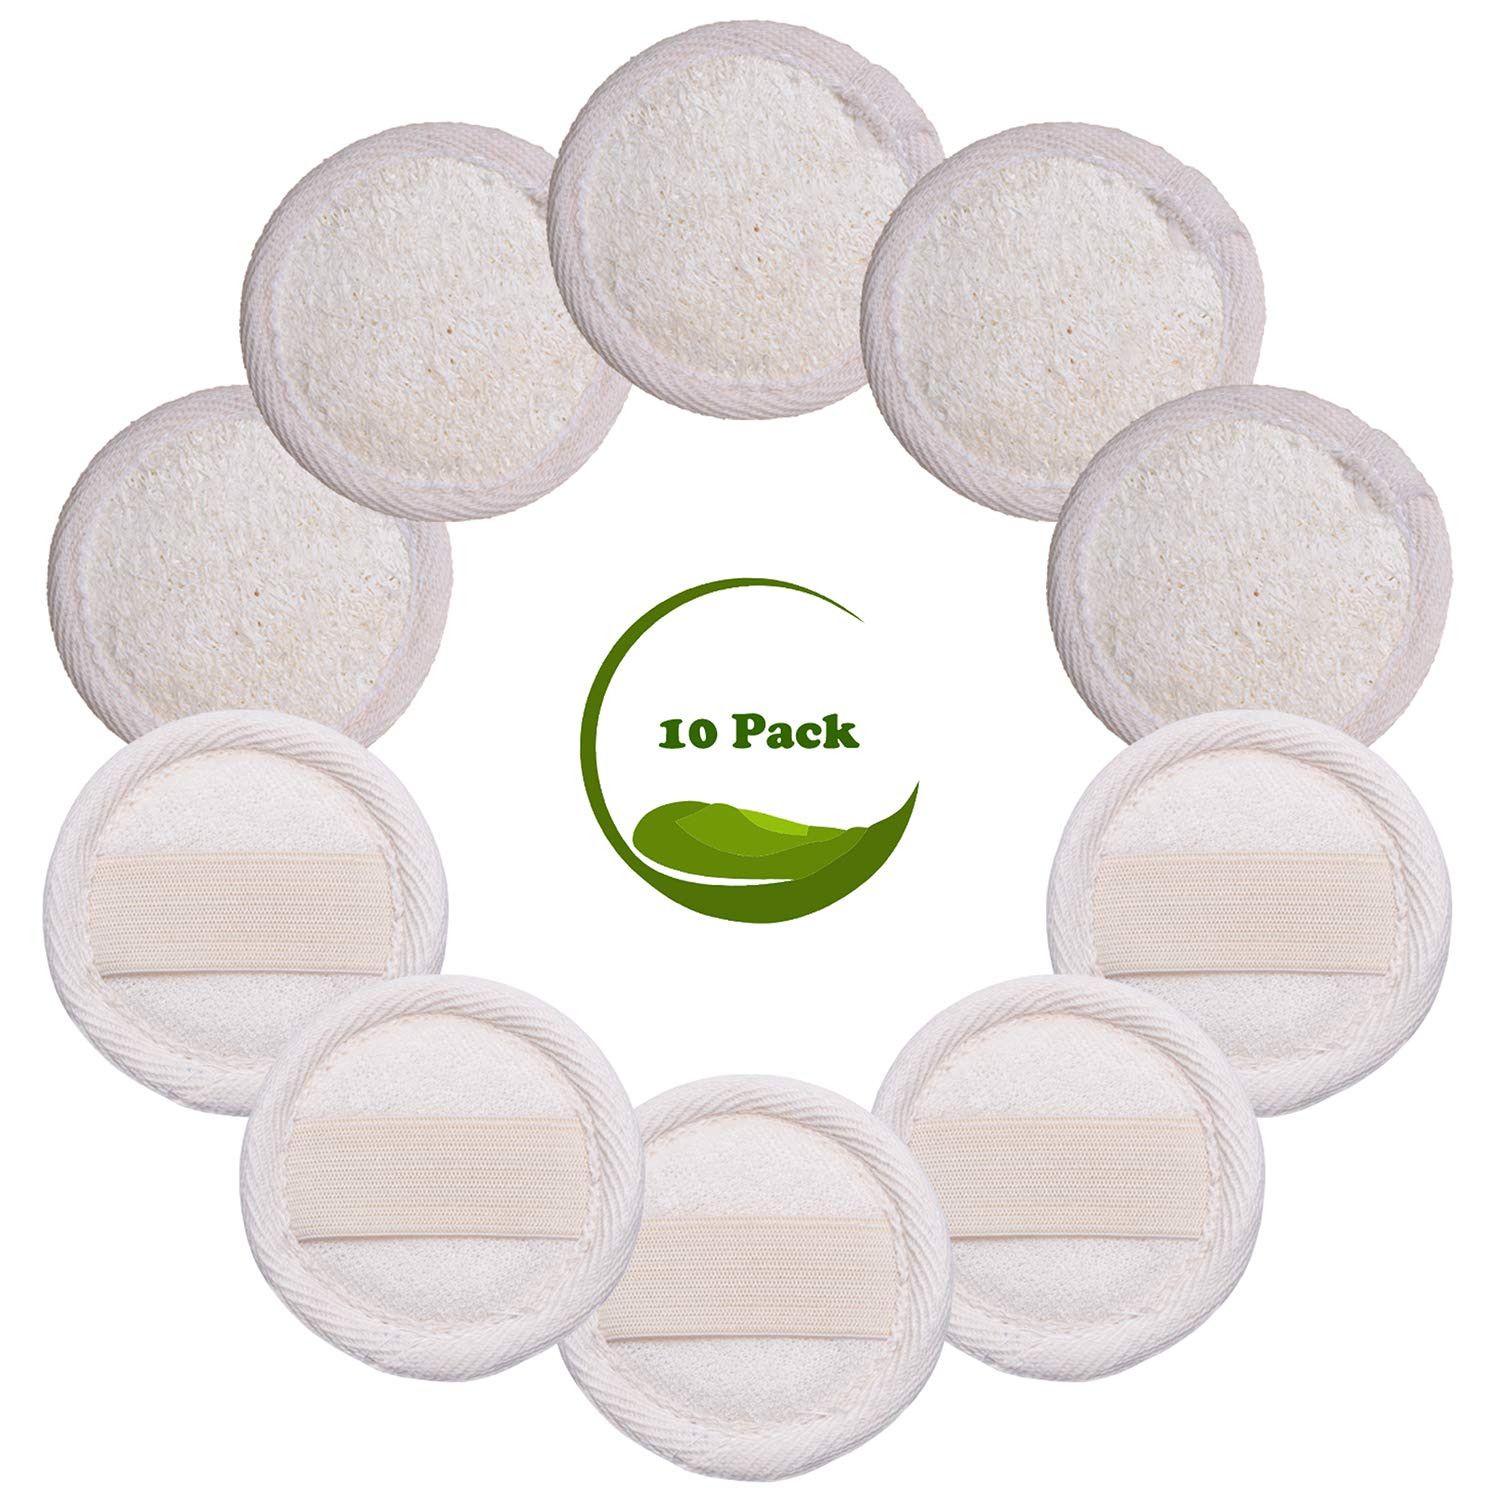 Sportout 10 Packs Exfoliating Loofah Face Brush Cleanser and Massager, 100% Natural Loofah Sponge Manual Facial Cleansing Scrubber Handheld Pad, For Men and Women